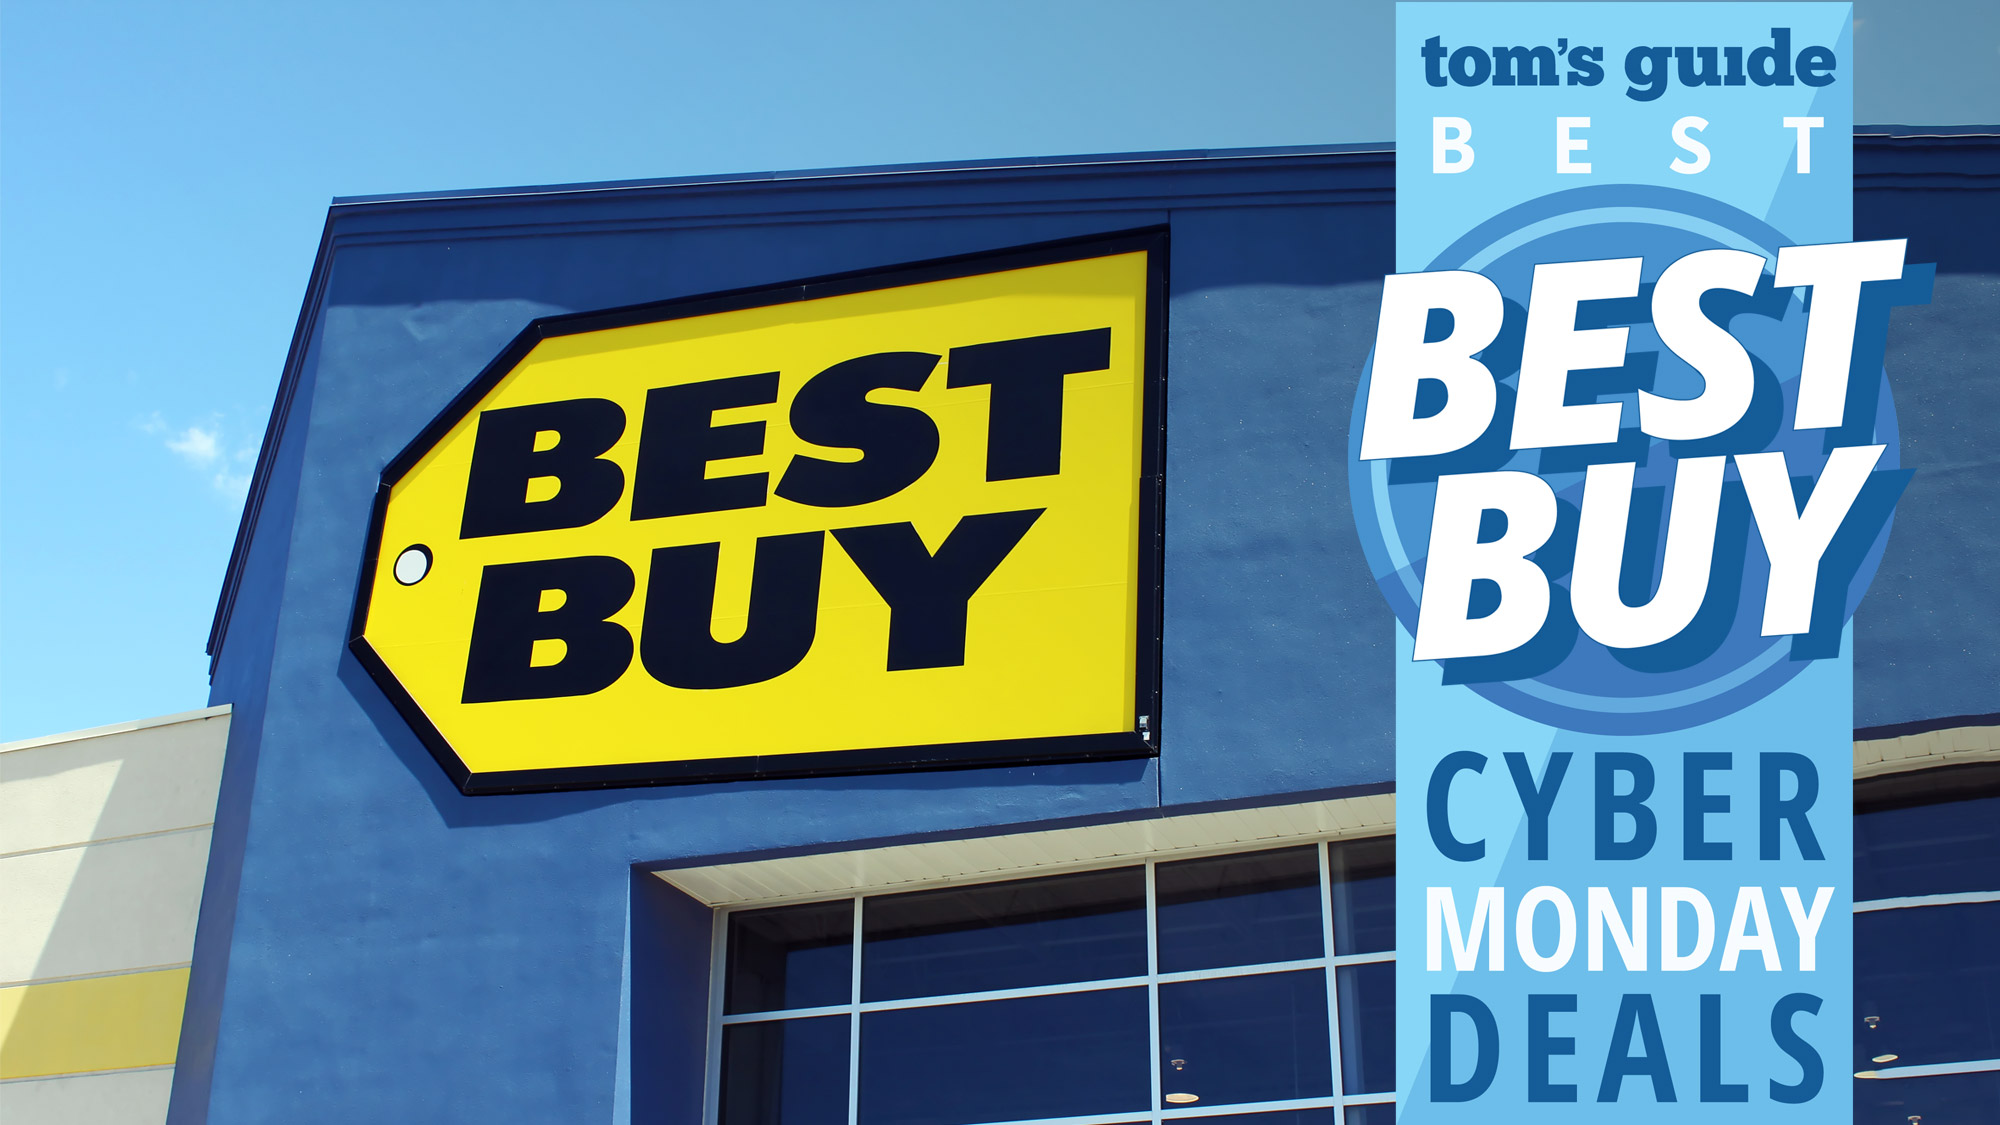 Best Buy Cyber Monday 2019 The Best Deals Right Now Tom S Guide